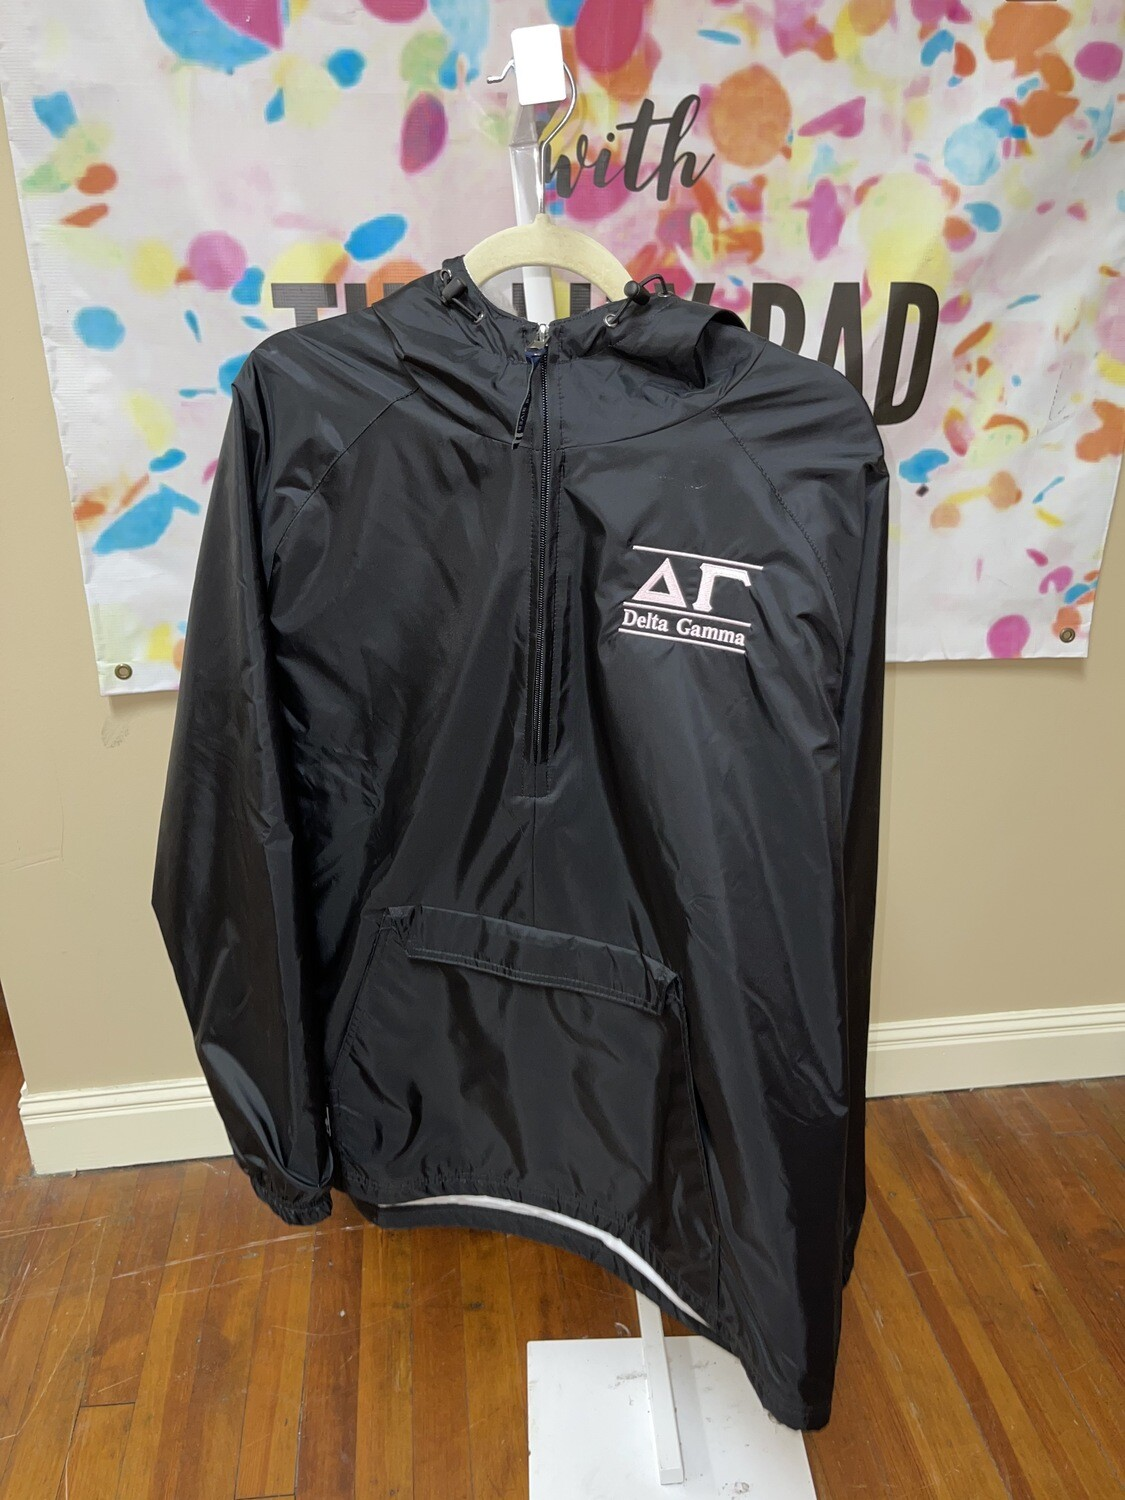 Sorority Rain Jacket: dg